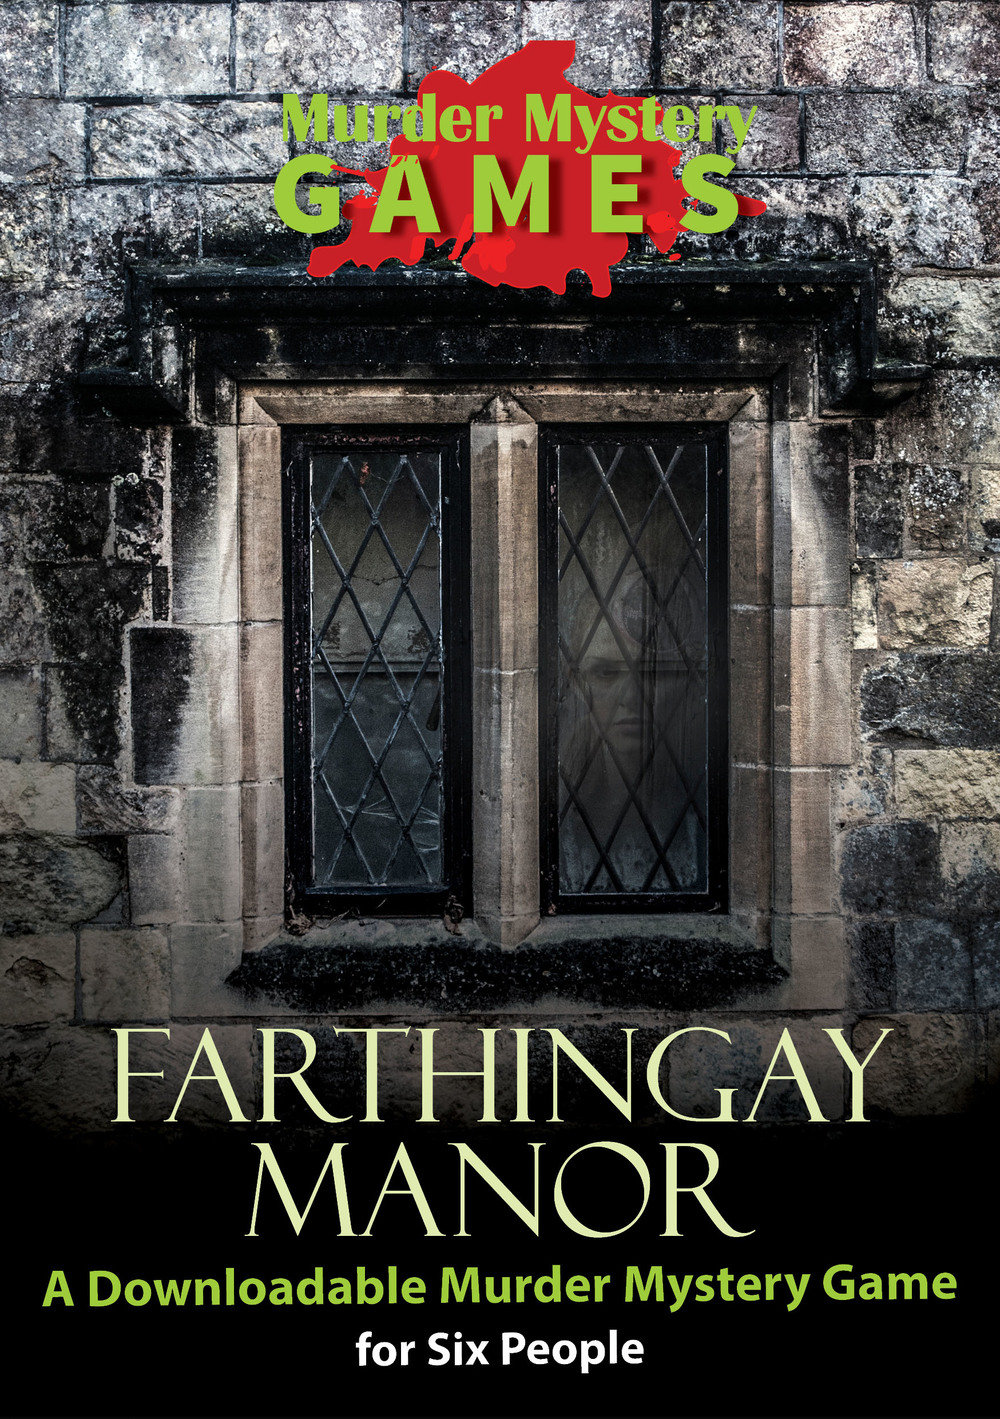 Farthingay Manor - a 1920s Murder Mystery Game for Six People